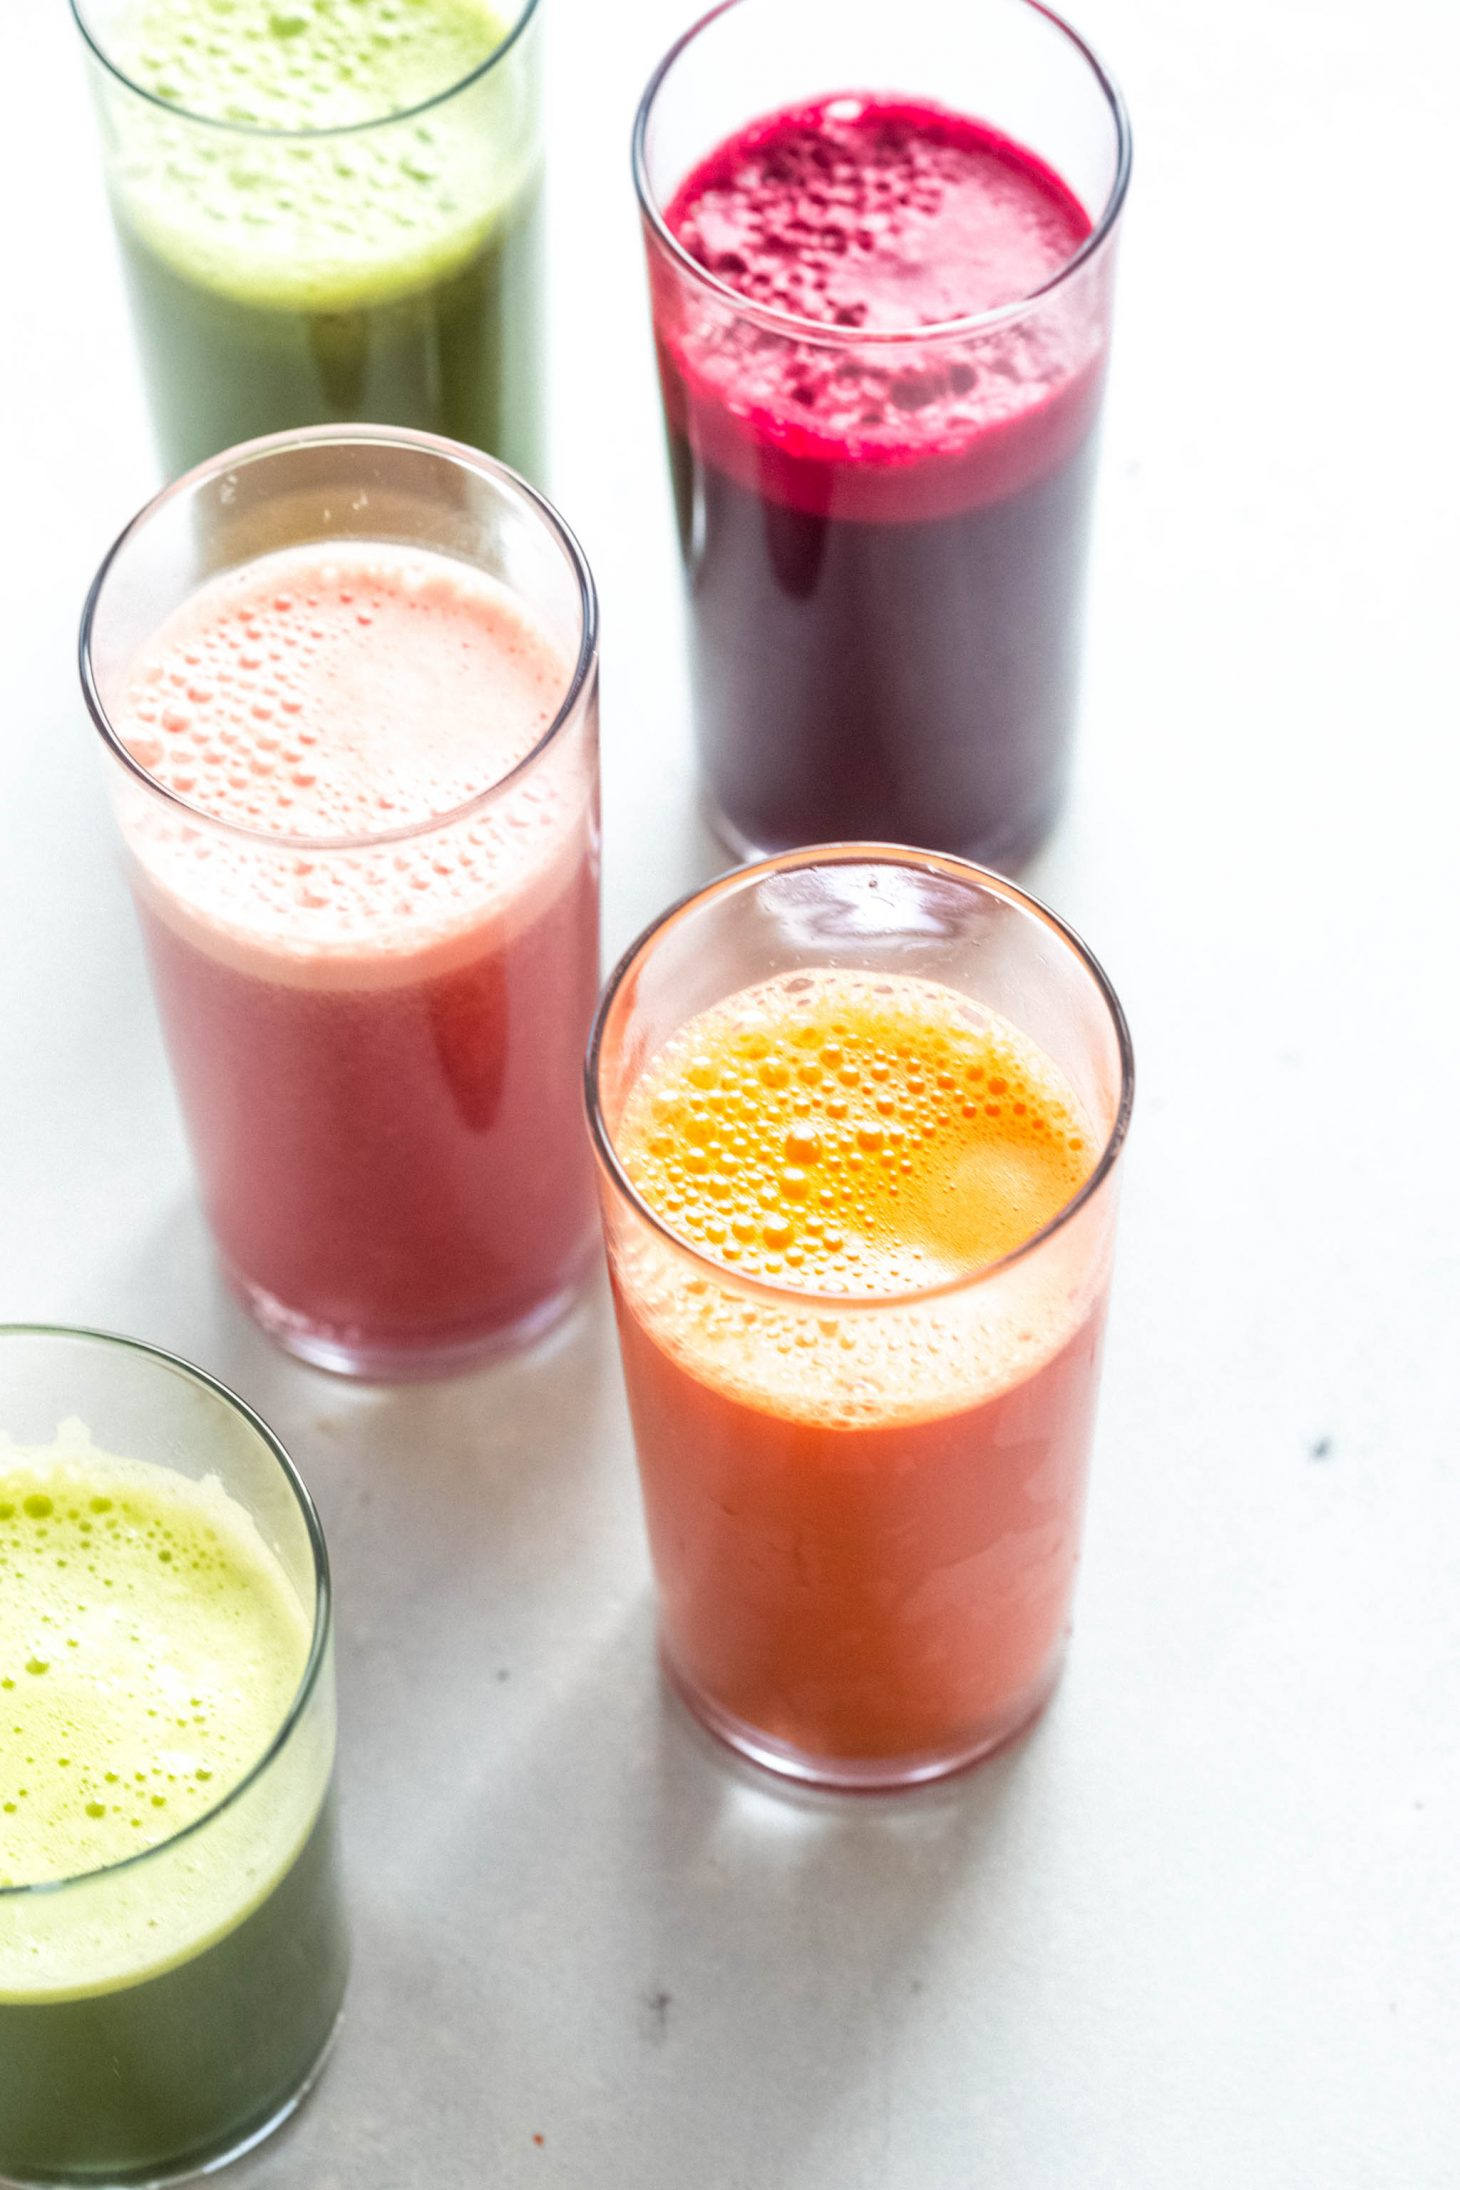 These 7 Healthy Juicing Recipes will help boost your energy, detox your body and aid with weight loss.